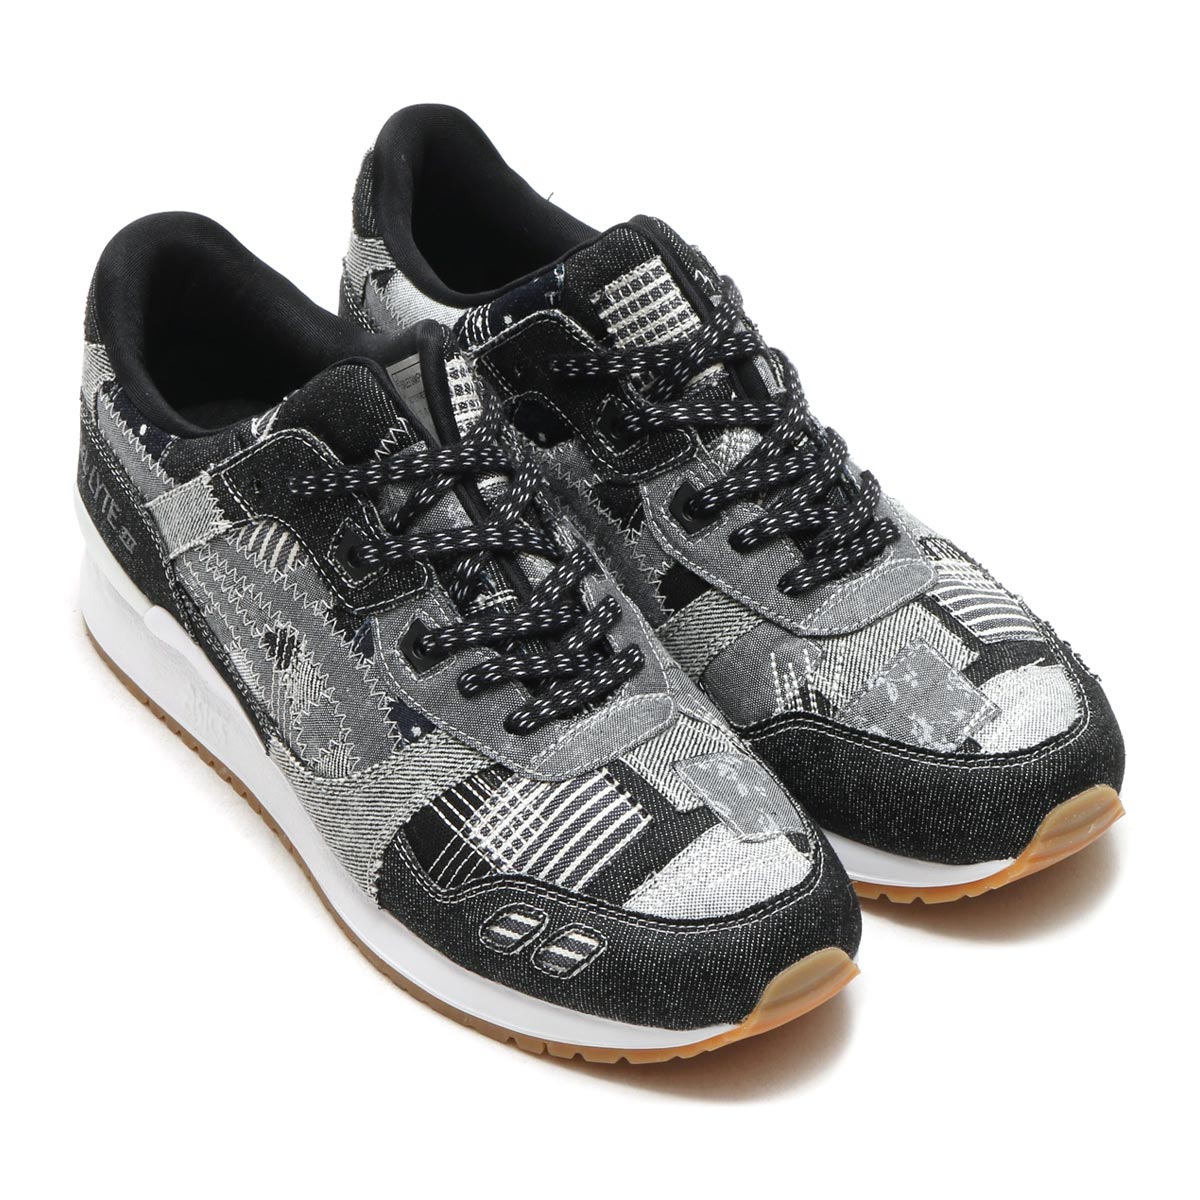 best loved 6d0f0 f5a66 The Asics Tiger Gel-Lyte III Ranru Pack is a True Patchwork ...